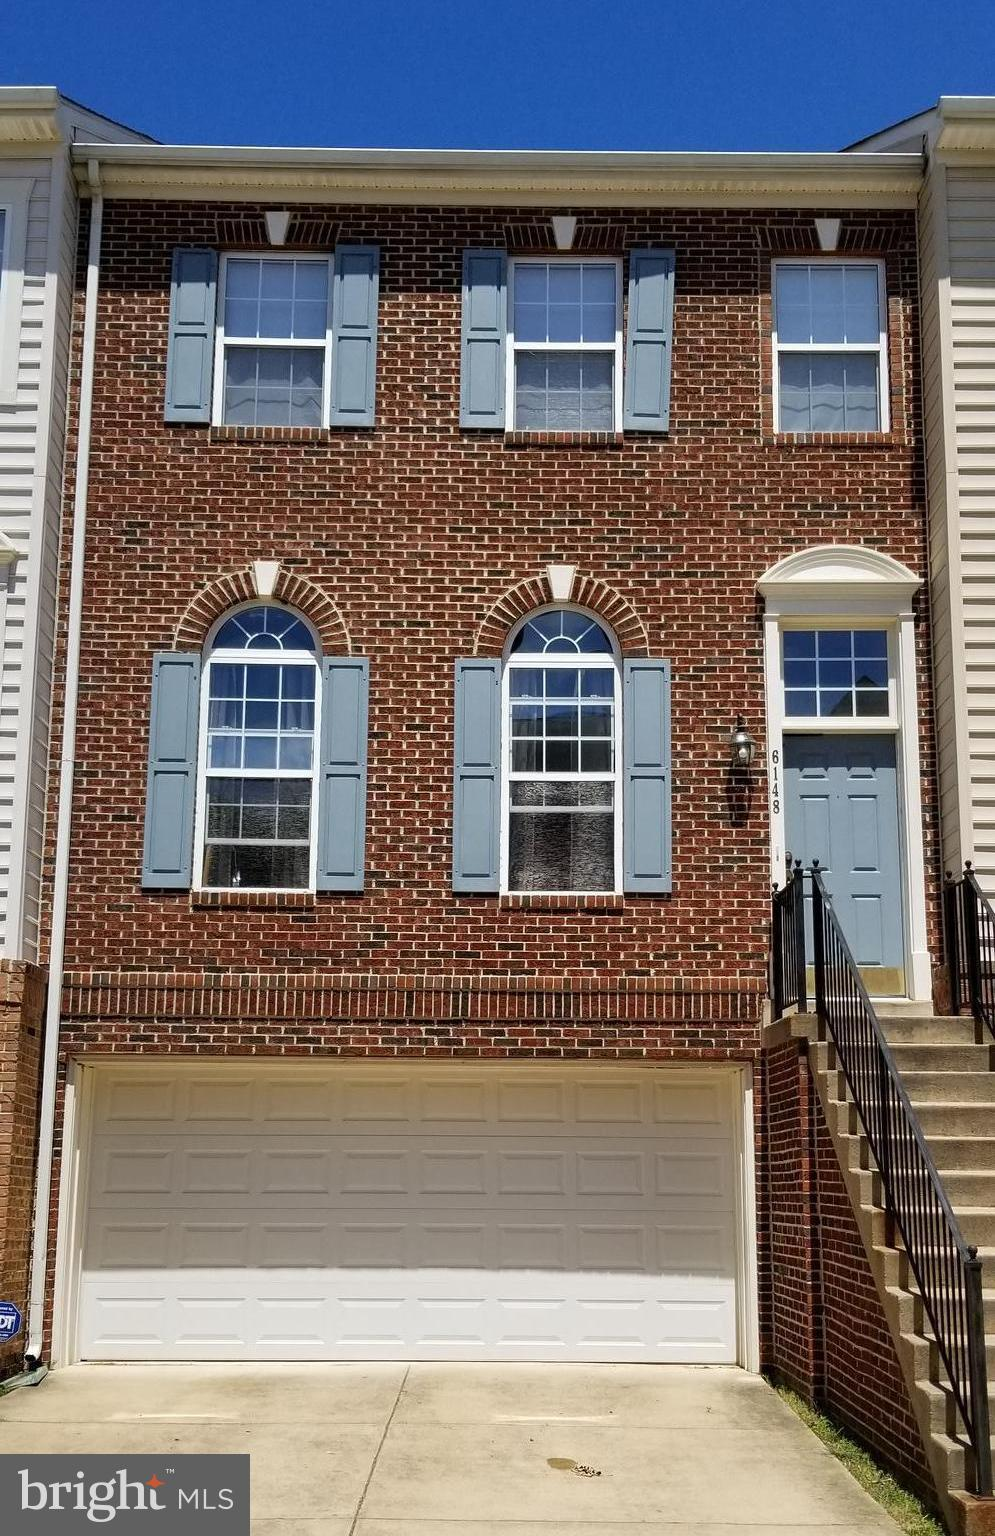 PRICE REDUCED!!! Move-In Ready*Beautiful townhouse w/ gorgeous views of wooded conservancy*NEW Stainless Steel Appliances *3 Levels w/ over 2,400 sq ft of Living Space*2 Car Garage*Large Kitchen off Family Room*Spacious Master Suite w/ Sitting Area, walk-in closet*Master bath includes Dual Vanity & Jetted Tub w/ Sep Shower*Great Location Near Pentagon, Fort Belvoir, and Metro*Call Today